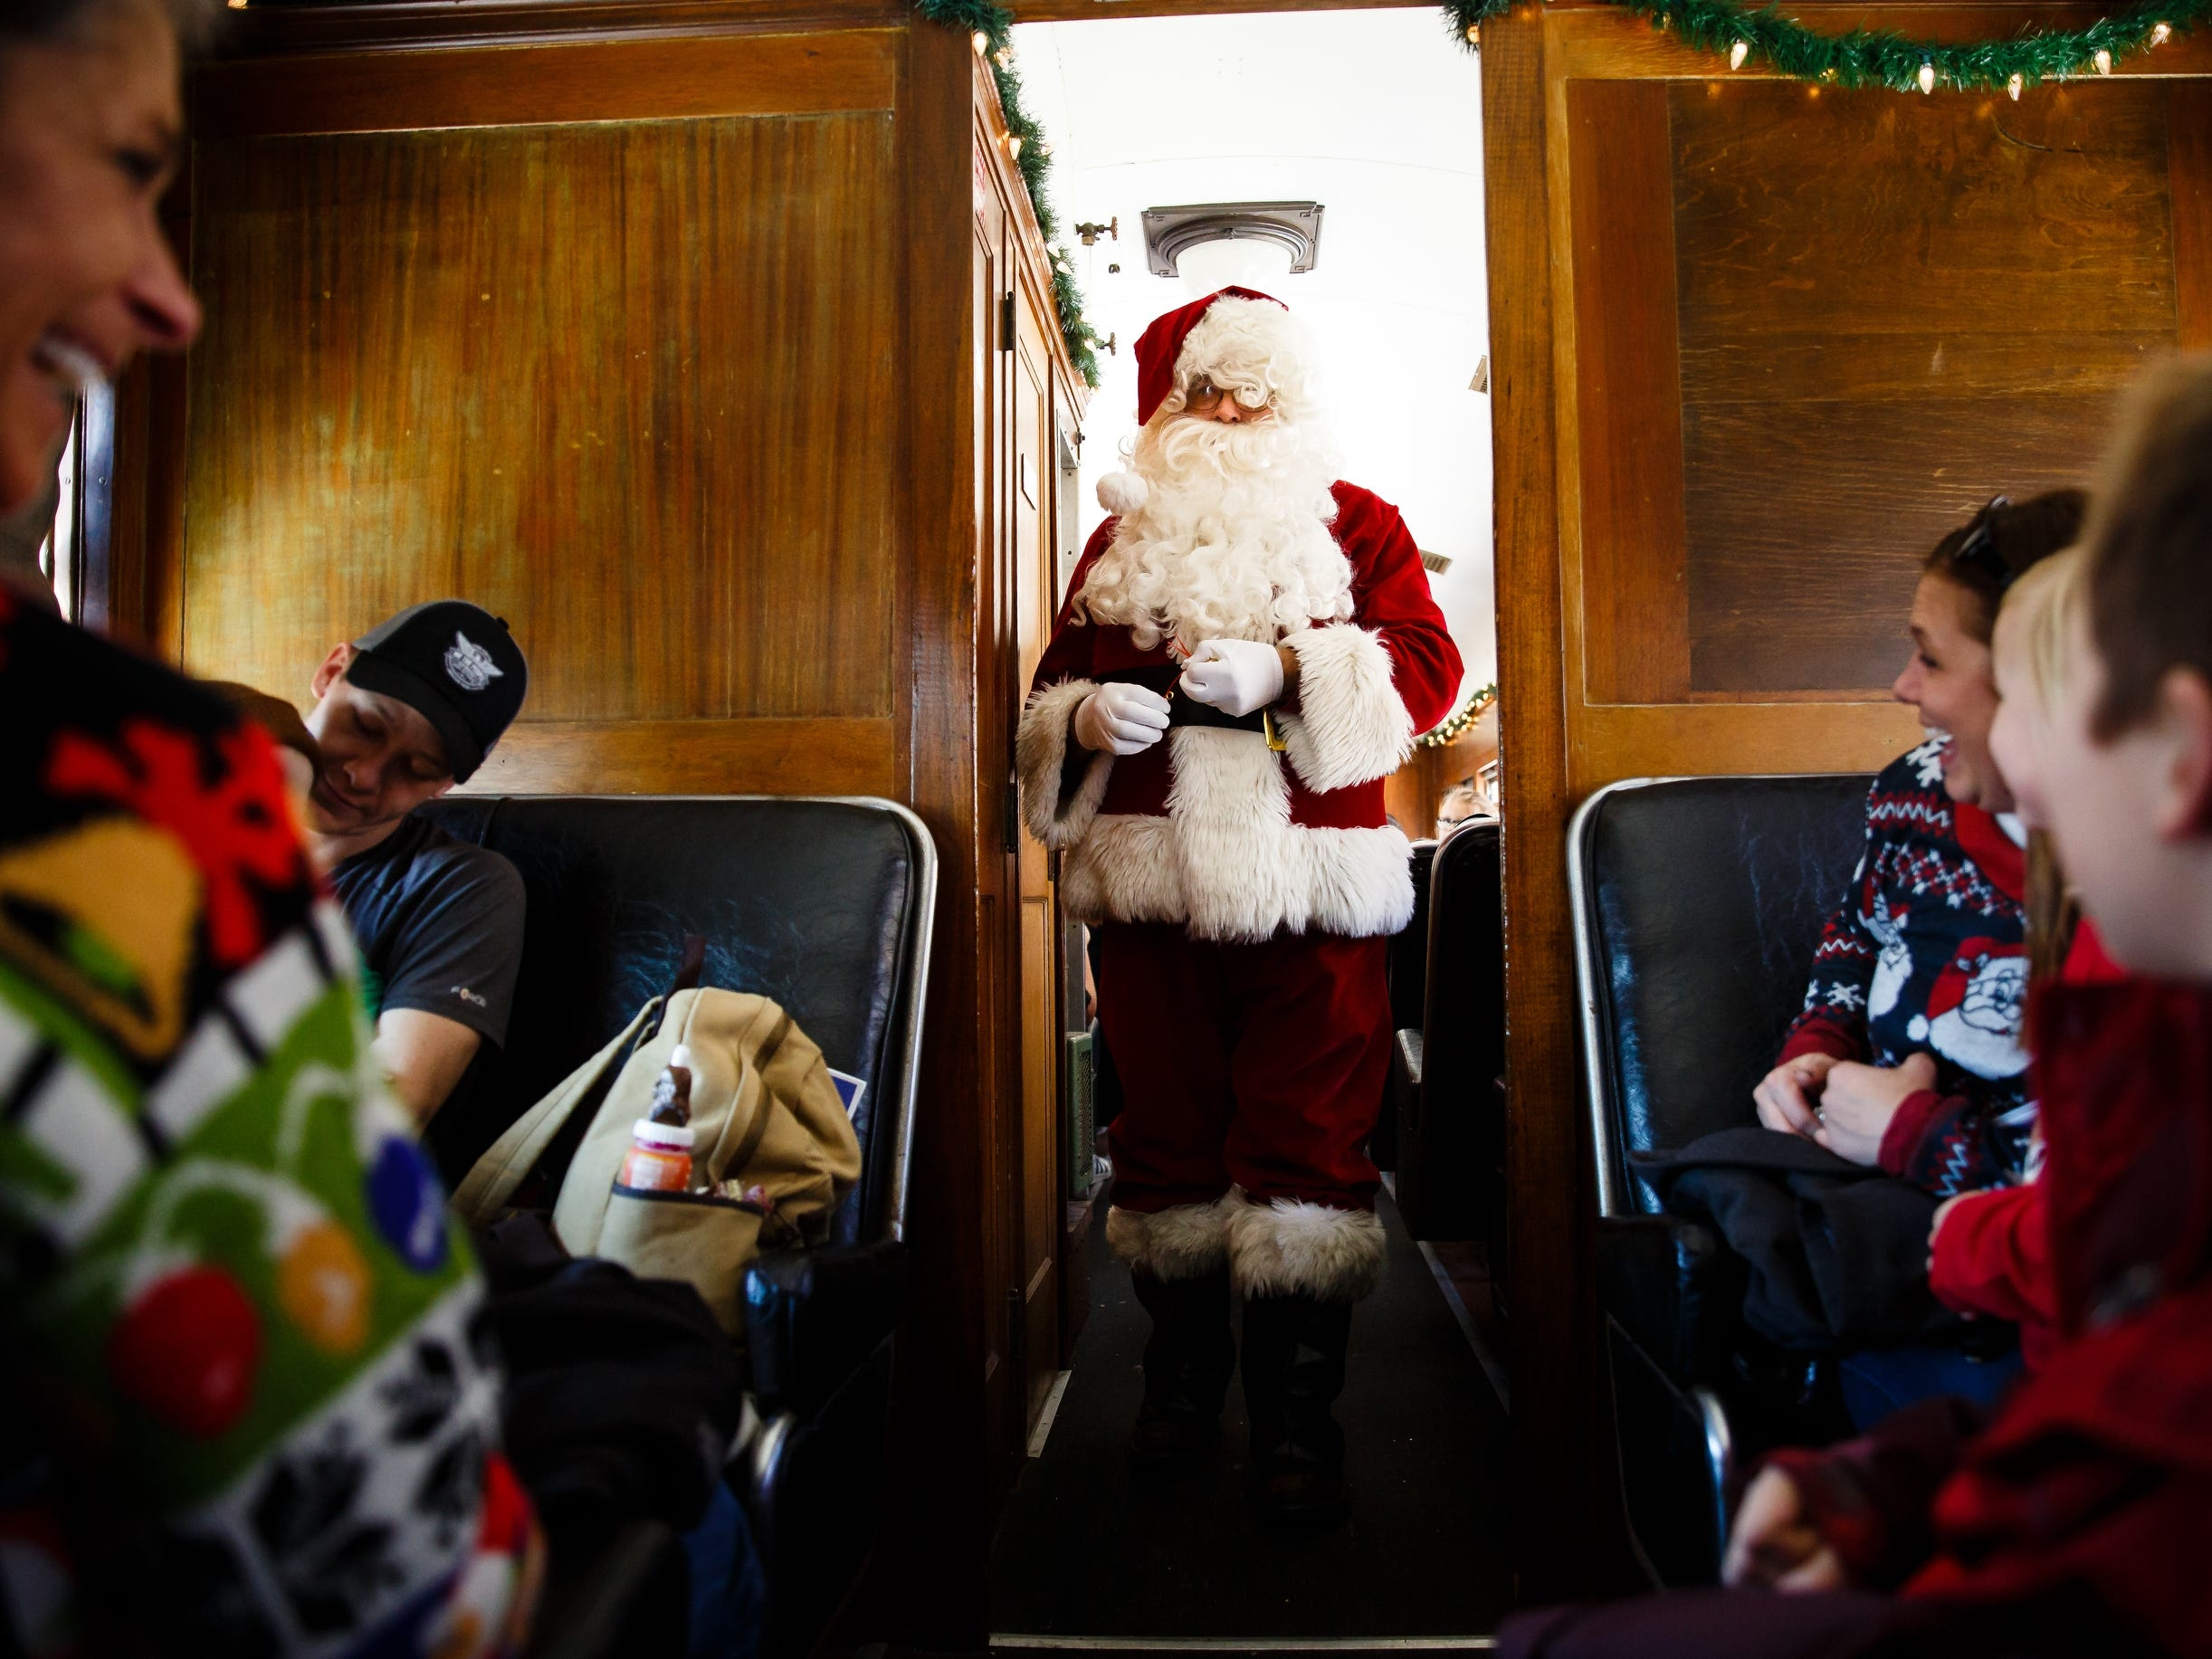 Santa, played by volunteer Roy Hogan, makes his way through a train car handing out bells during the Santa Express at the Boone and Scenic Valley Railroads on Saturday, Dec. 8, 2018, in Boone.